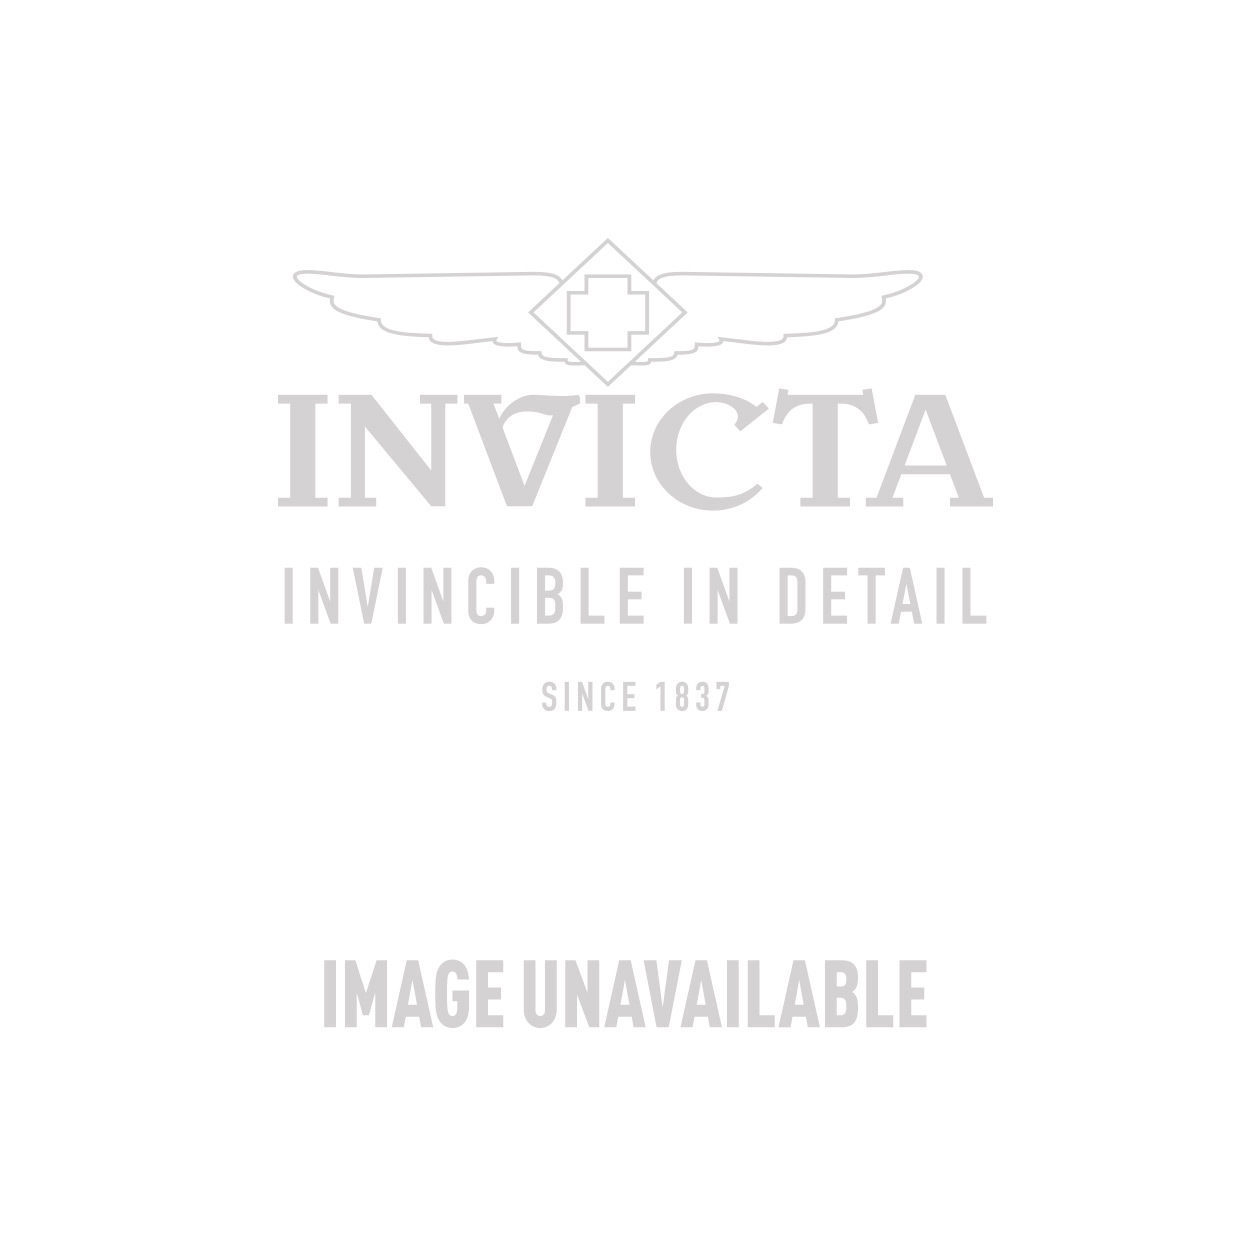 Invicta Specialty Swiss Movement Quartz Watch - Gold case with Black tone Leather band - Model 12173